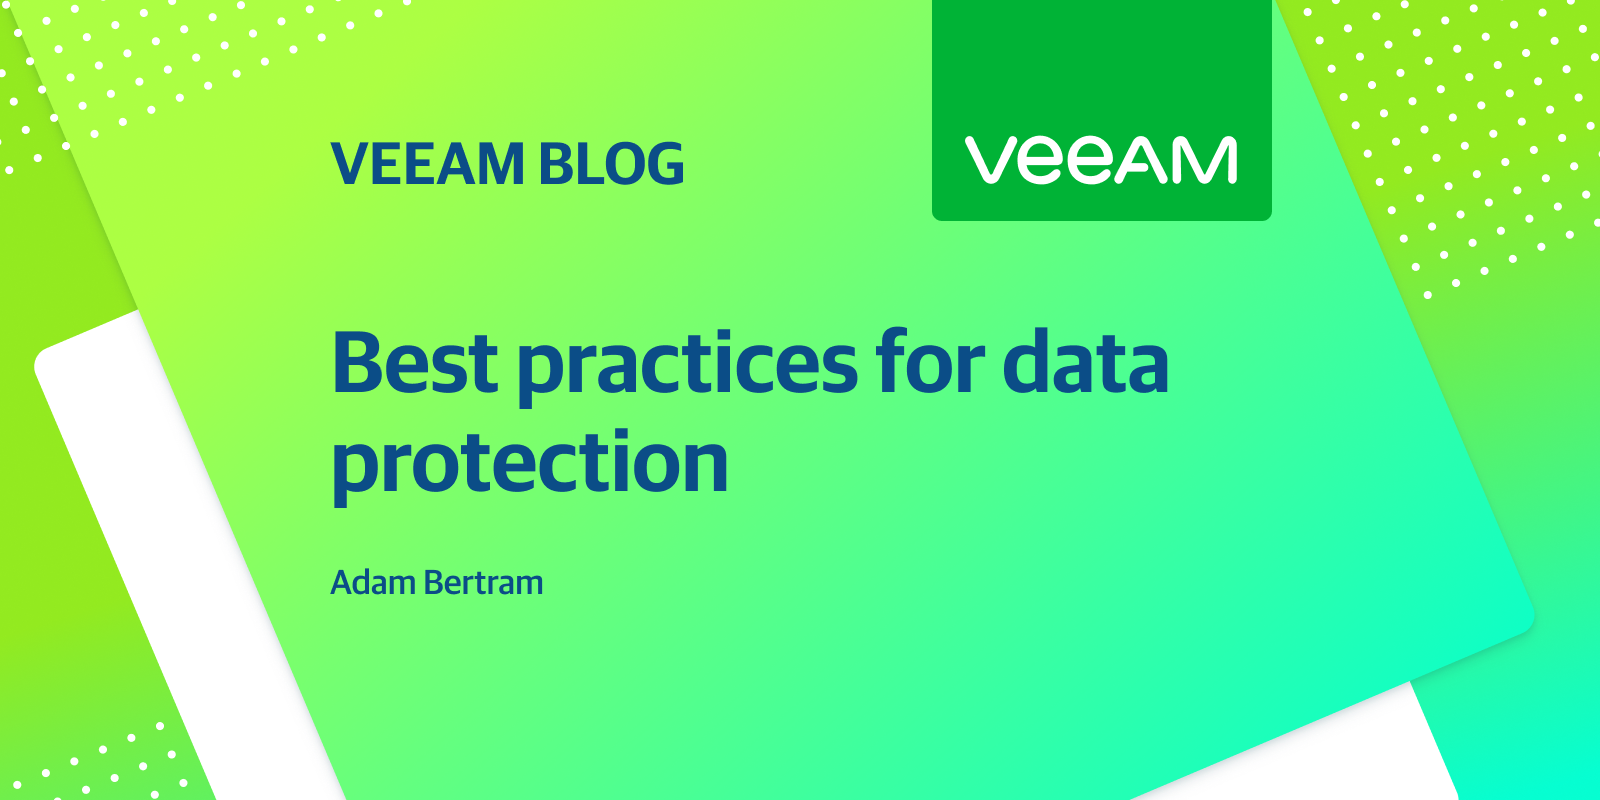 Guidelines for data protection